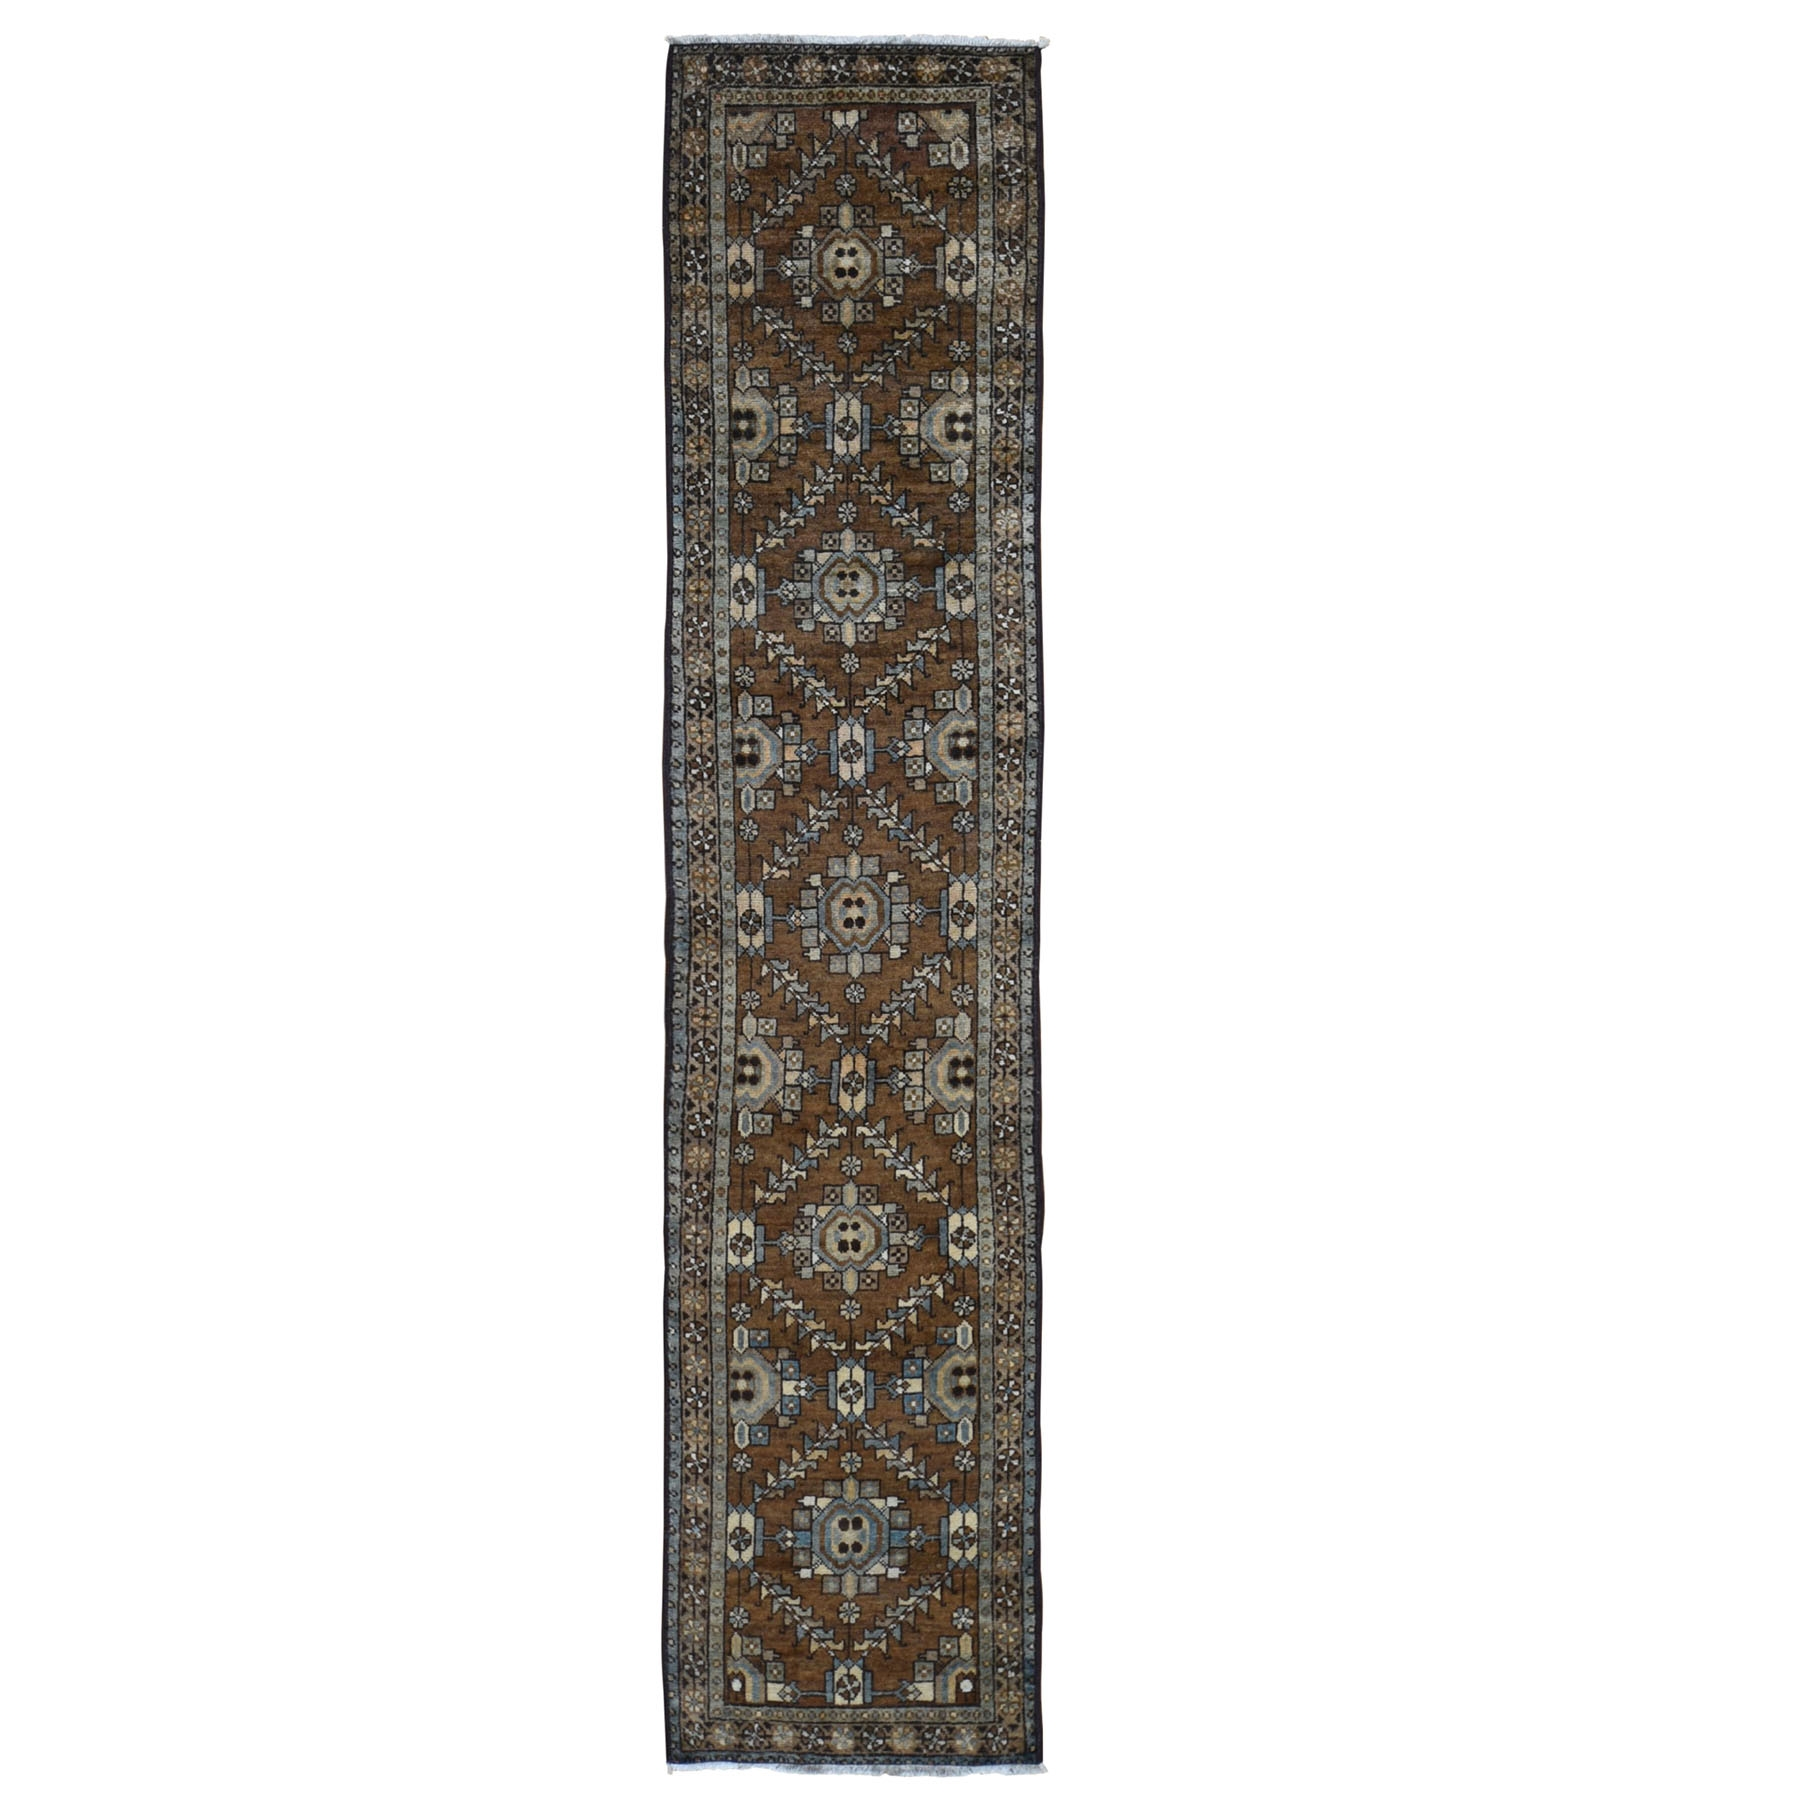 "2'x9'1"" Brown Antique Persian Heriz With Soft Natural Colors Narrow Runner Hand Woven Oriental Rug"